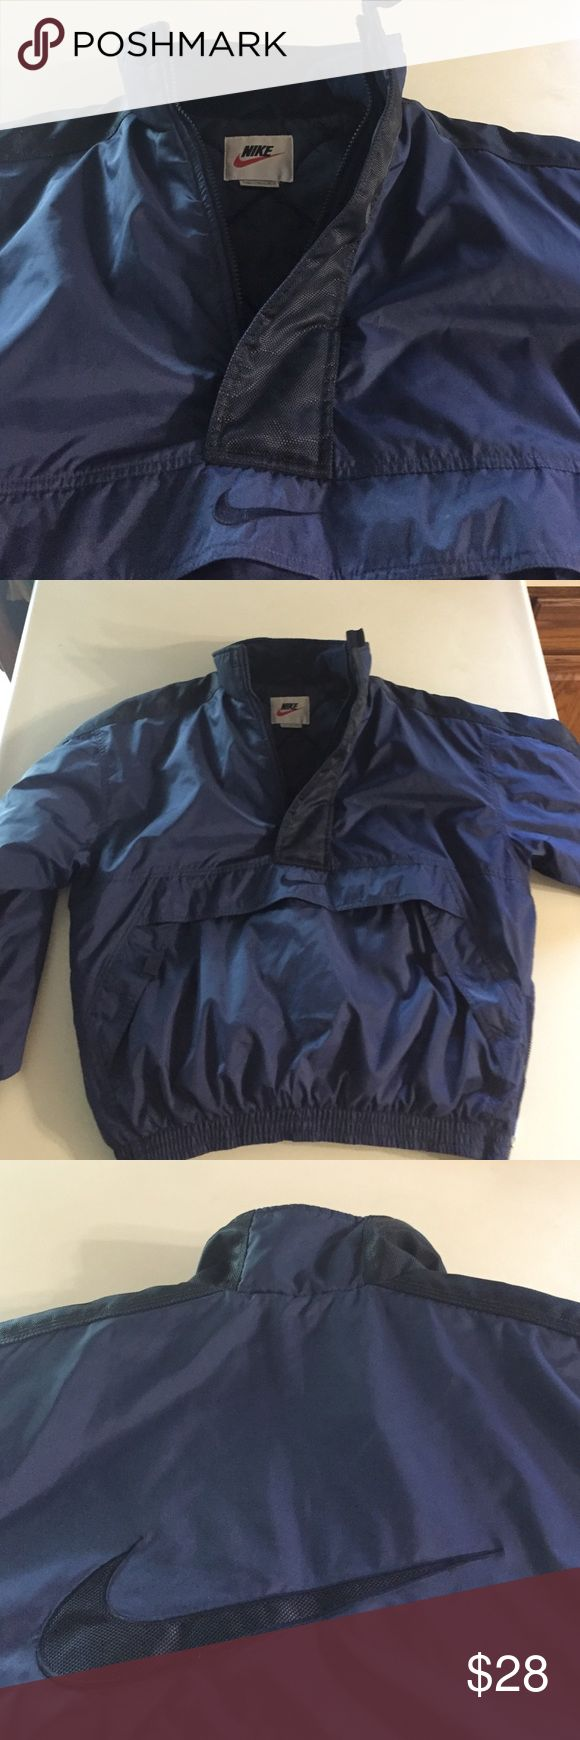 SALE Nike winter coat jacket Mens medium M puffer Very warm men's size medium winter nylon puffer coat. It is navy blue. It is in excellent condition. Nike Jackets & Coats Puffers